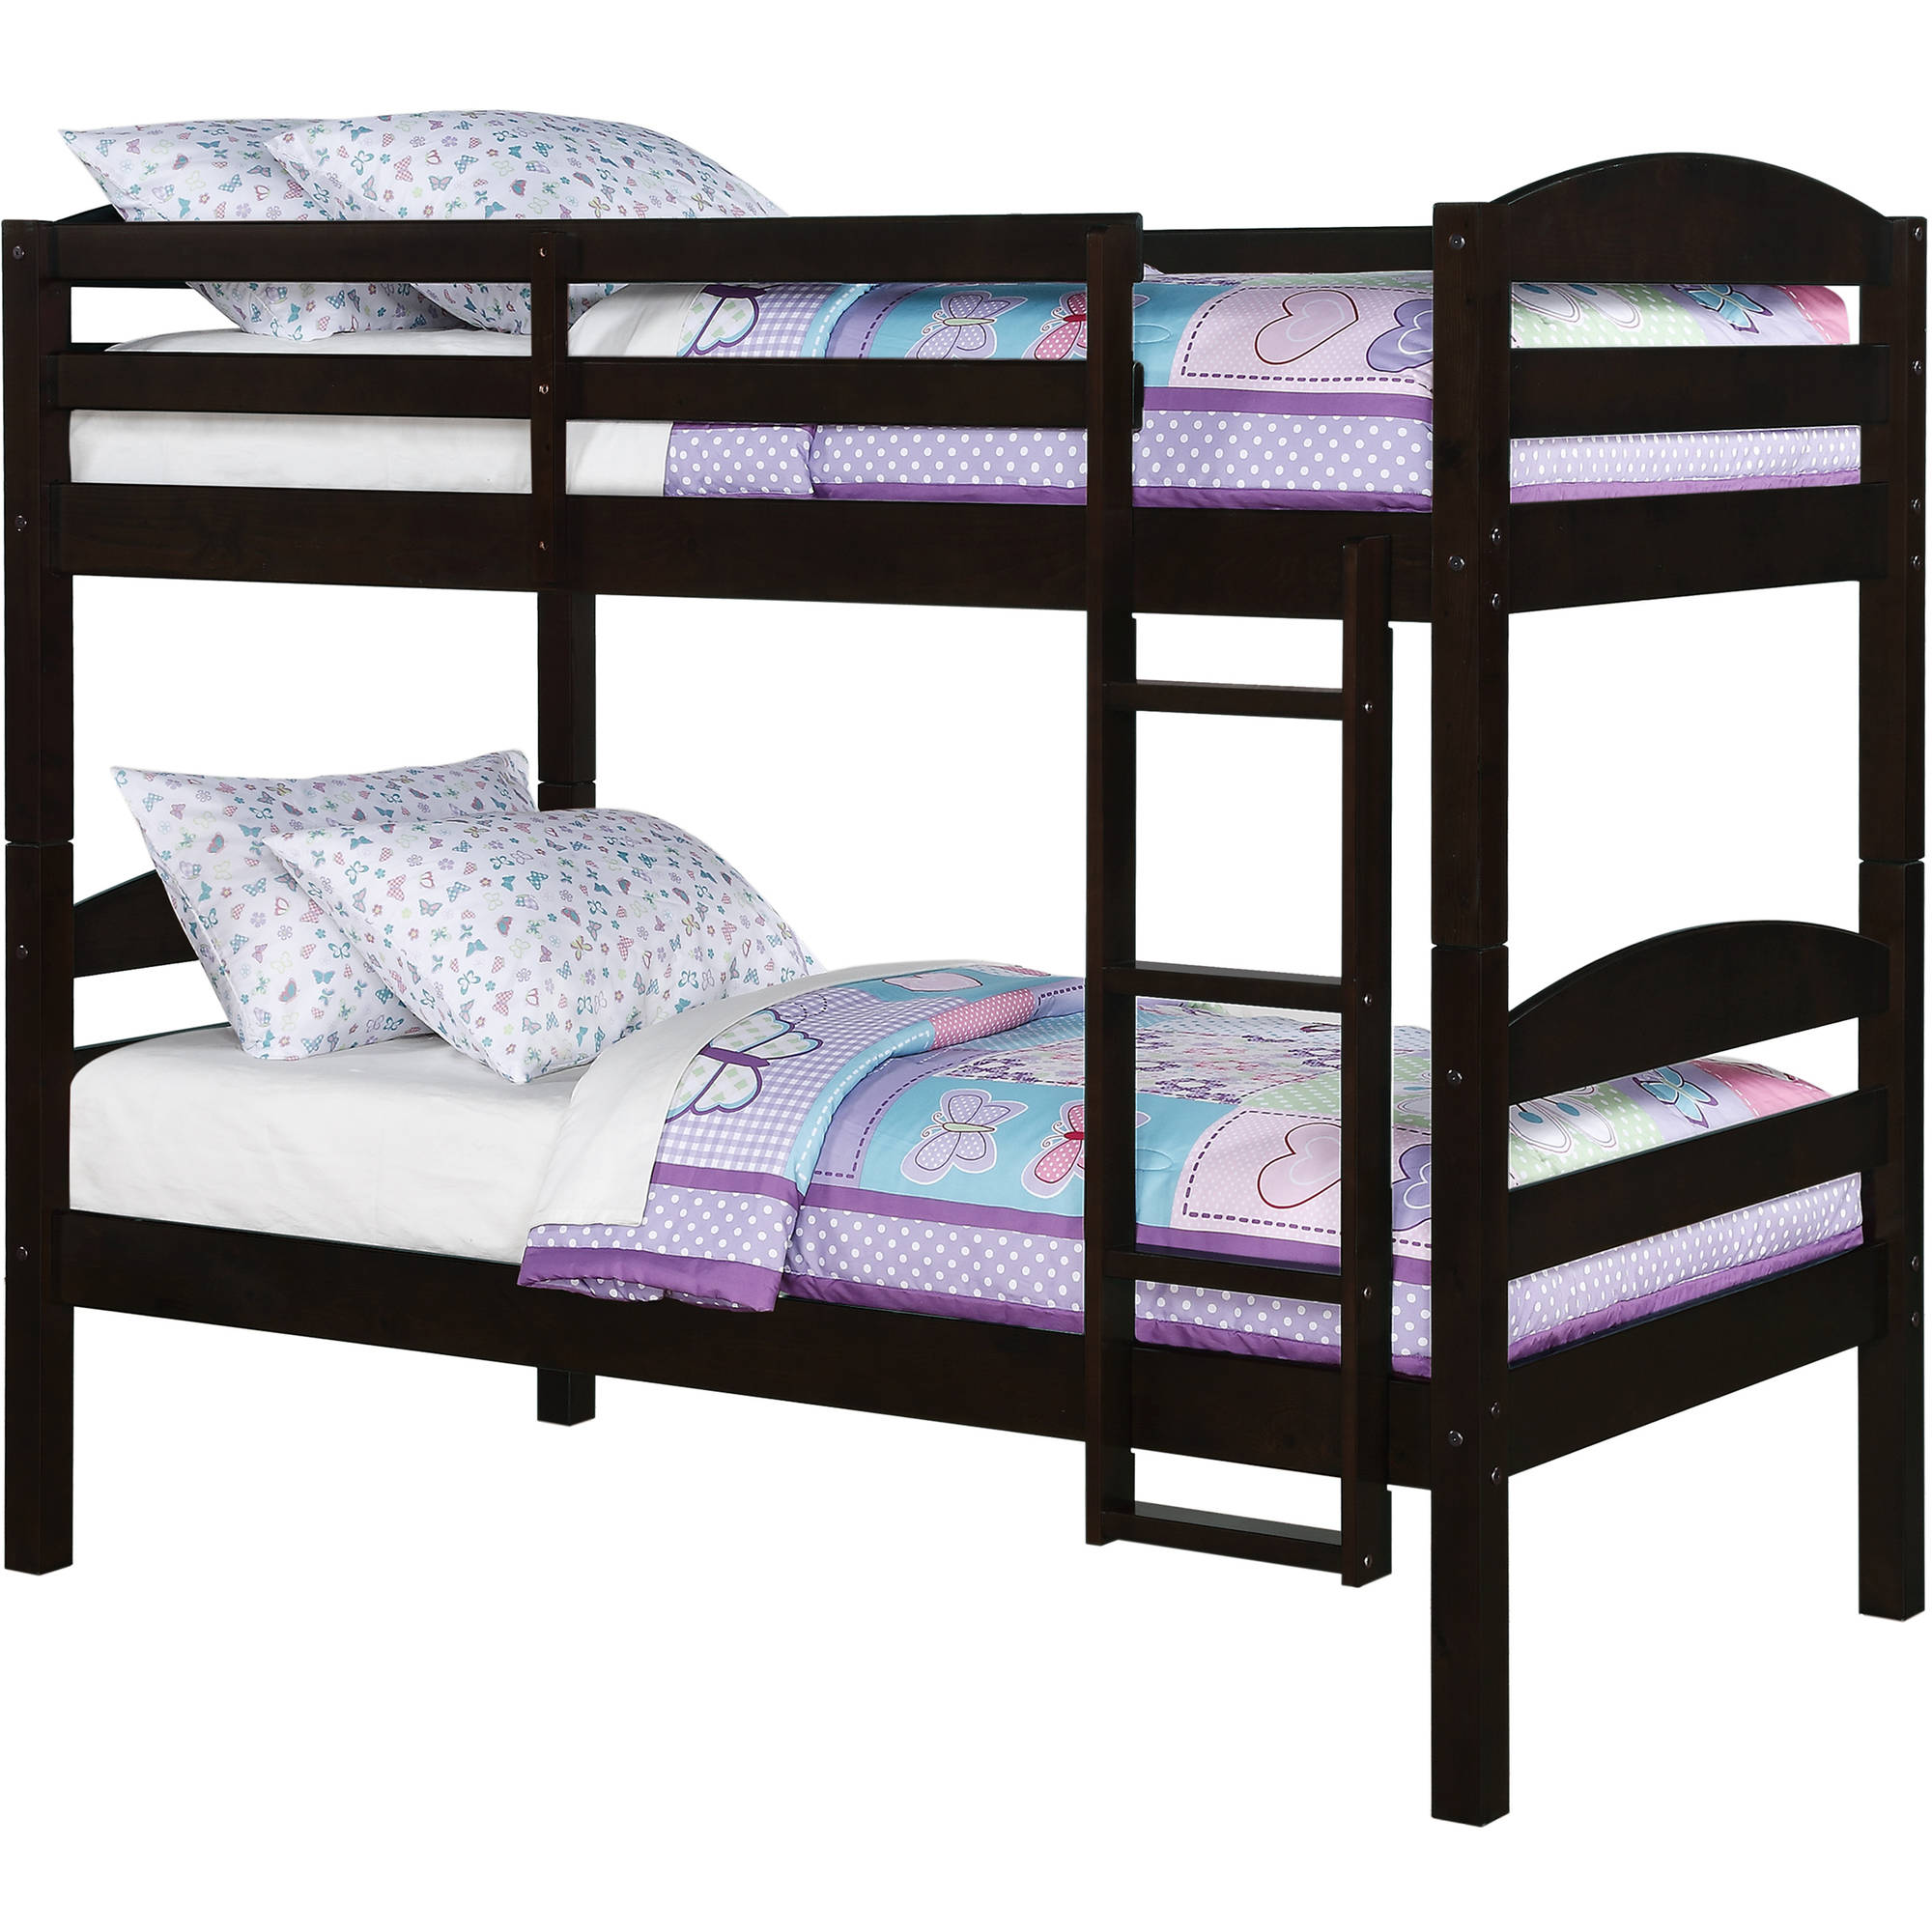 Bunk Beds Twin Over Twin Kids Furniture Bedroom Ladder Wood ...